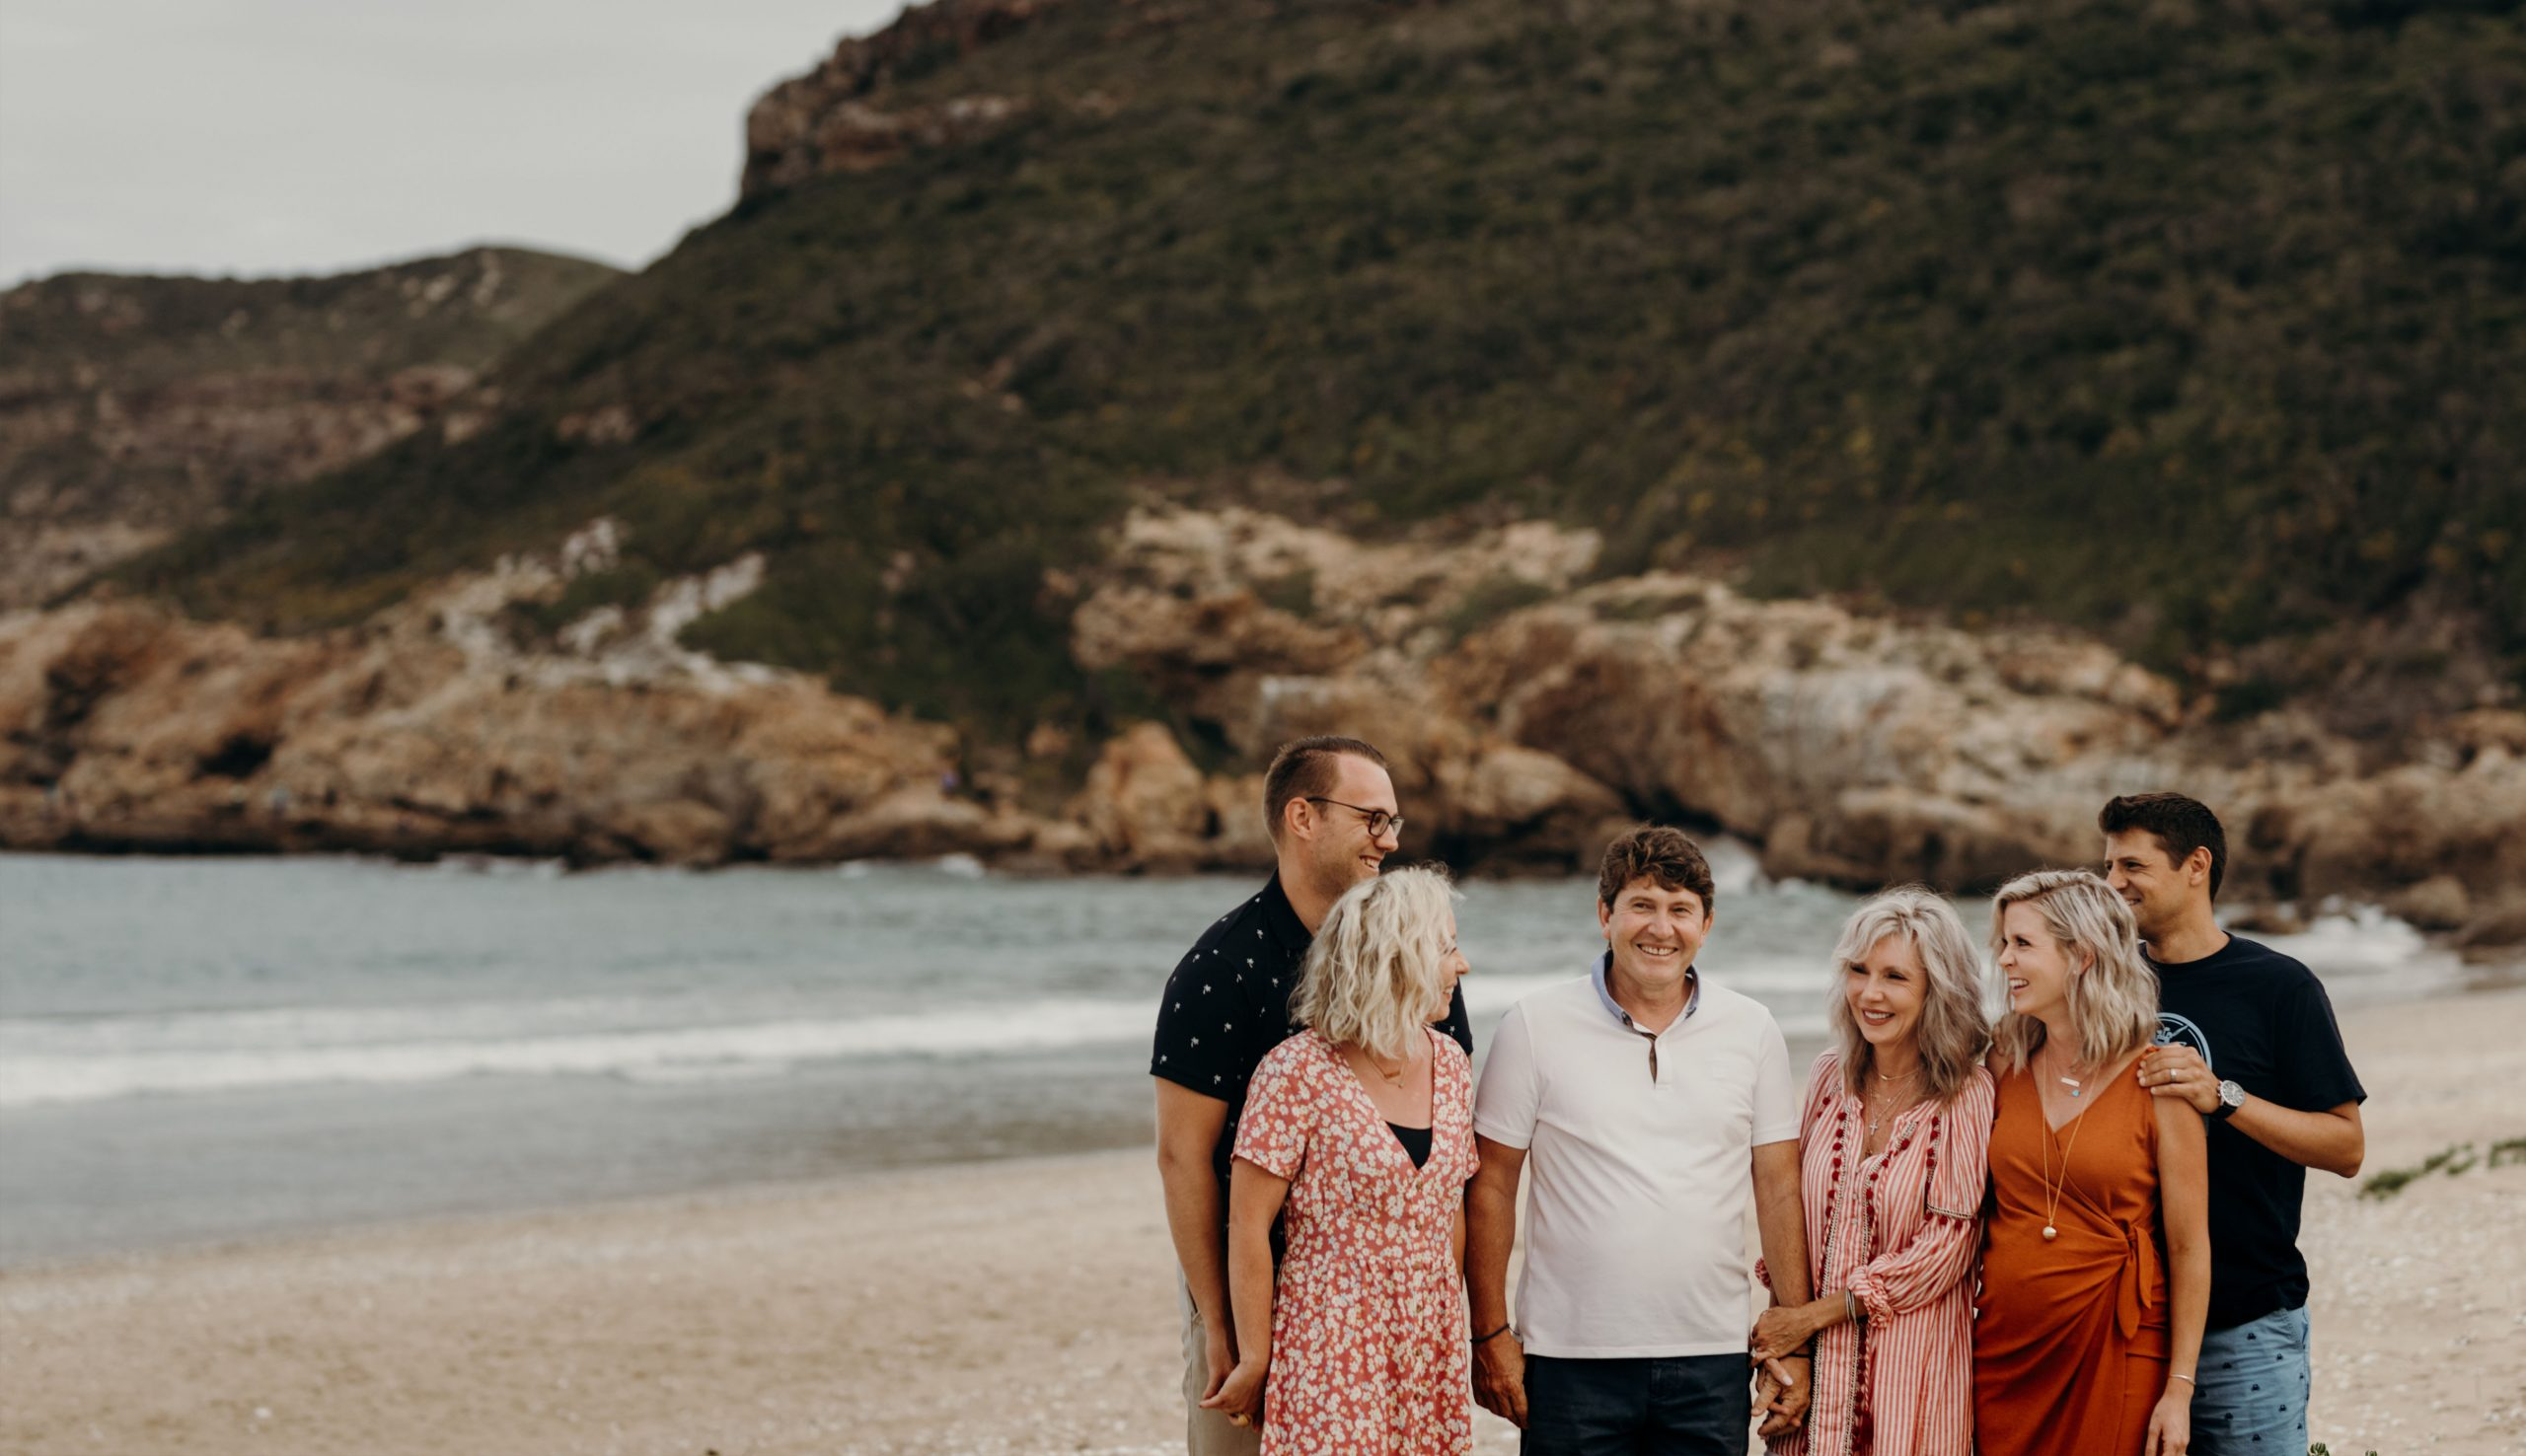 michelle brink, garden route, family photographer, plettenberg bay, beach, plett it's a feeling, family photography, the wreck, beach, thomas, keurboomstrand, natures valley